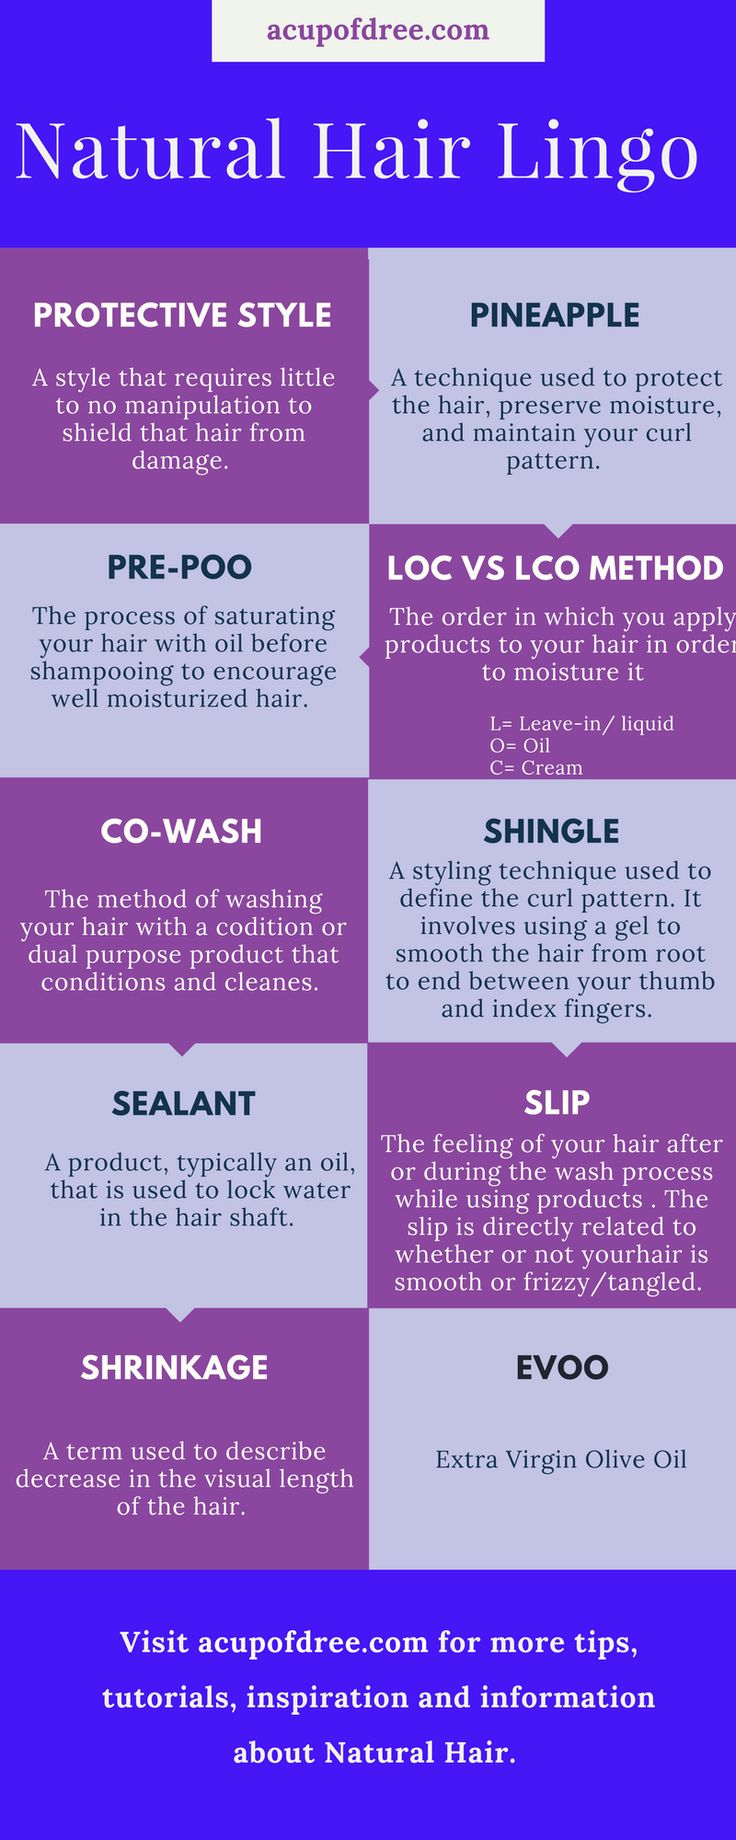 Common Natural Hair Terms  #naturalhair #hair #haircare #naturalhaircommunity